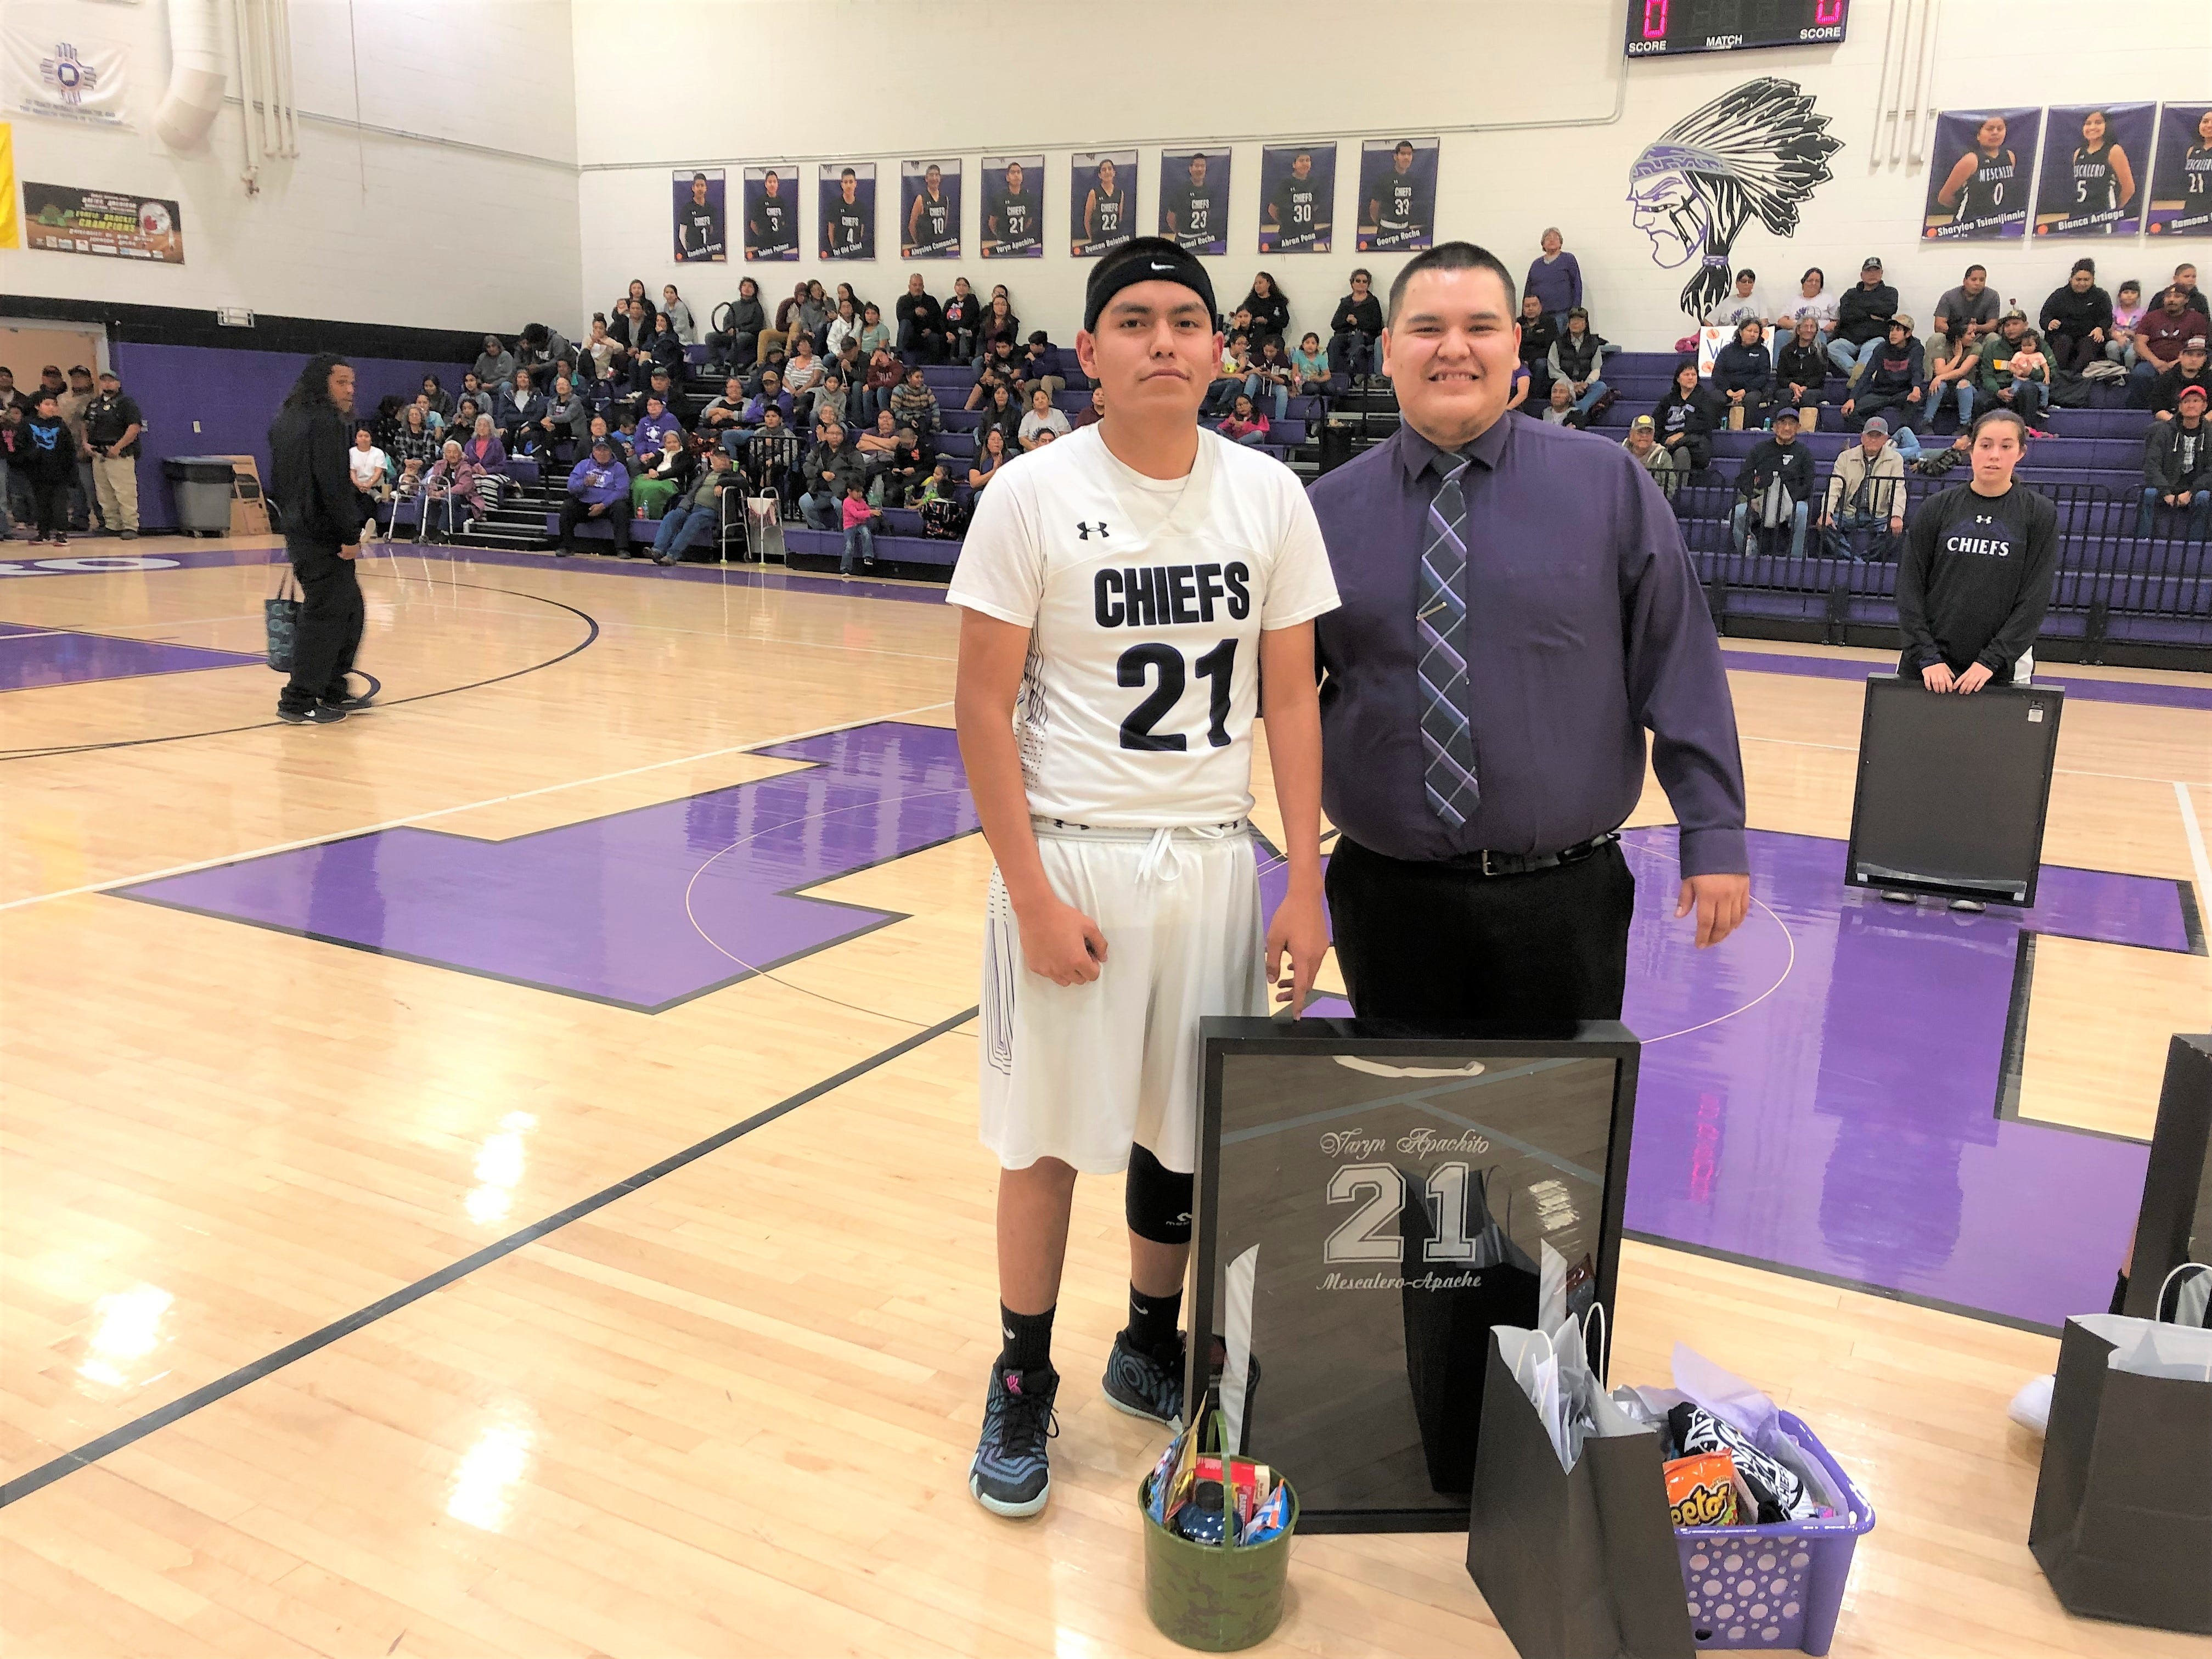 A varsity boys basketball player stands next to coach Kane with his newly framed jersey. The school celebrates both academic and athletic departments and is proud of their students.